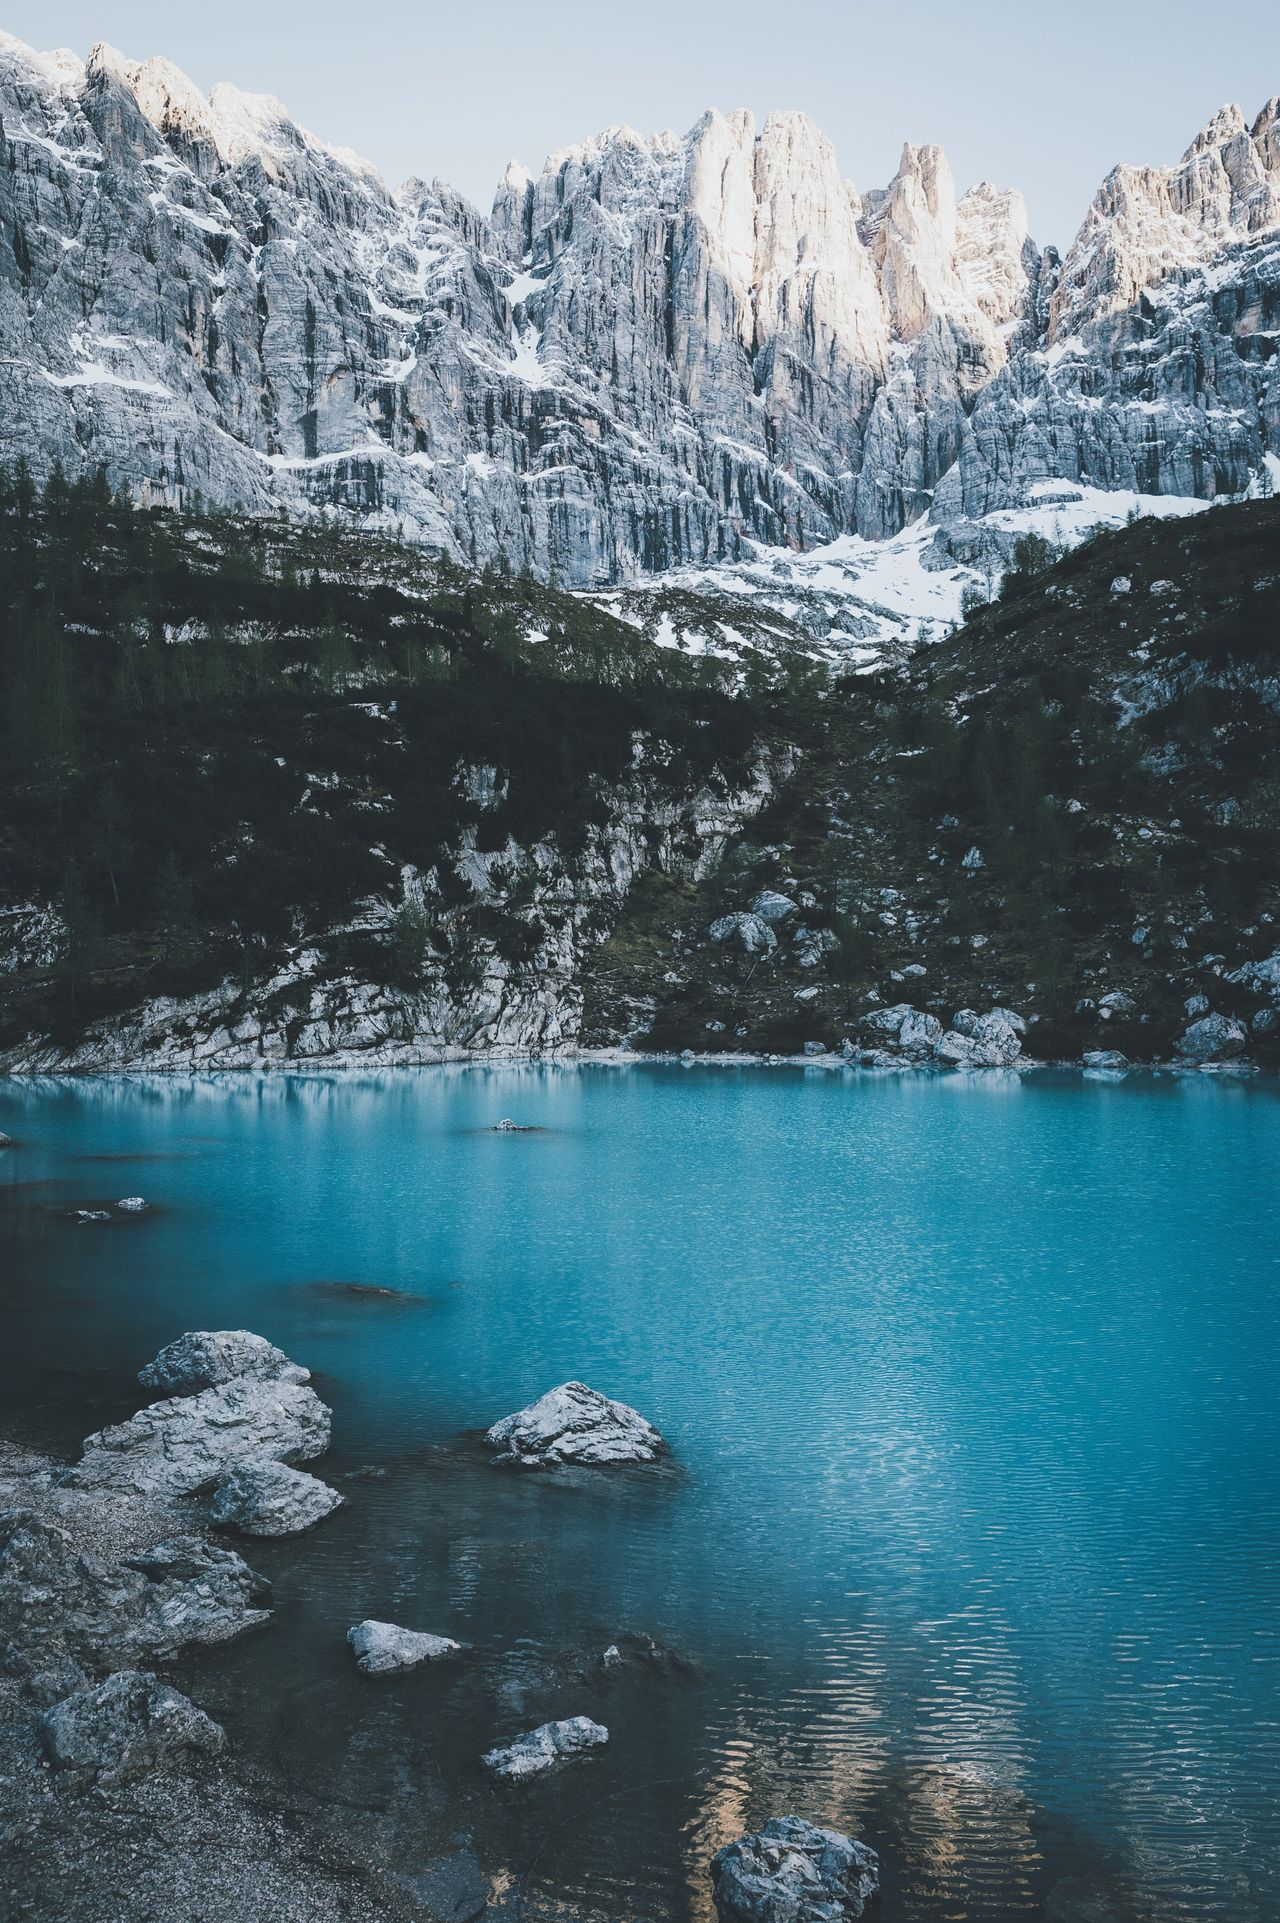 Blue diamond. Mountain Scenics Snow Beauty In Nature Nature Cold Temperature Lake Tranquility Tranquil Scene Winter Ice Water Outdoors Mountain Range Landscape Frozen No People Idyllic Day Snowcapped Mountain Italy